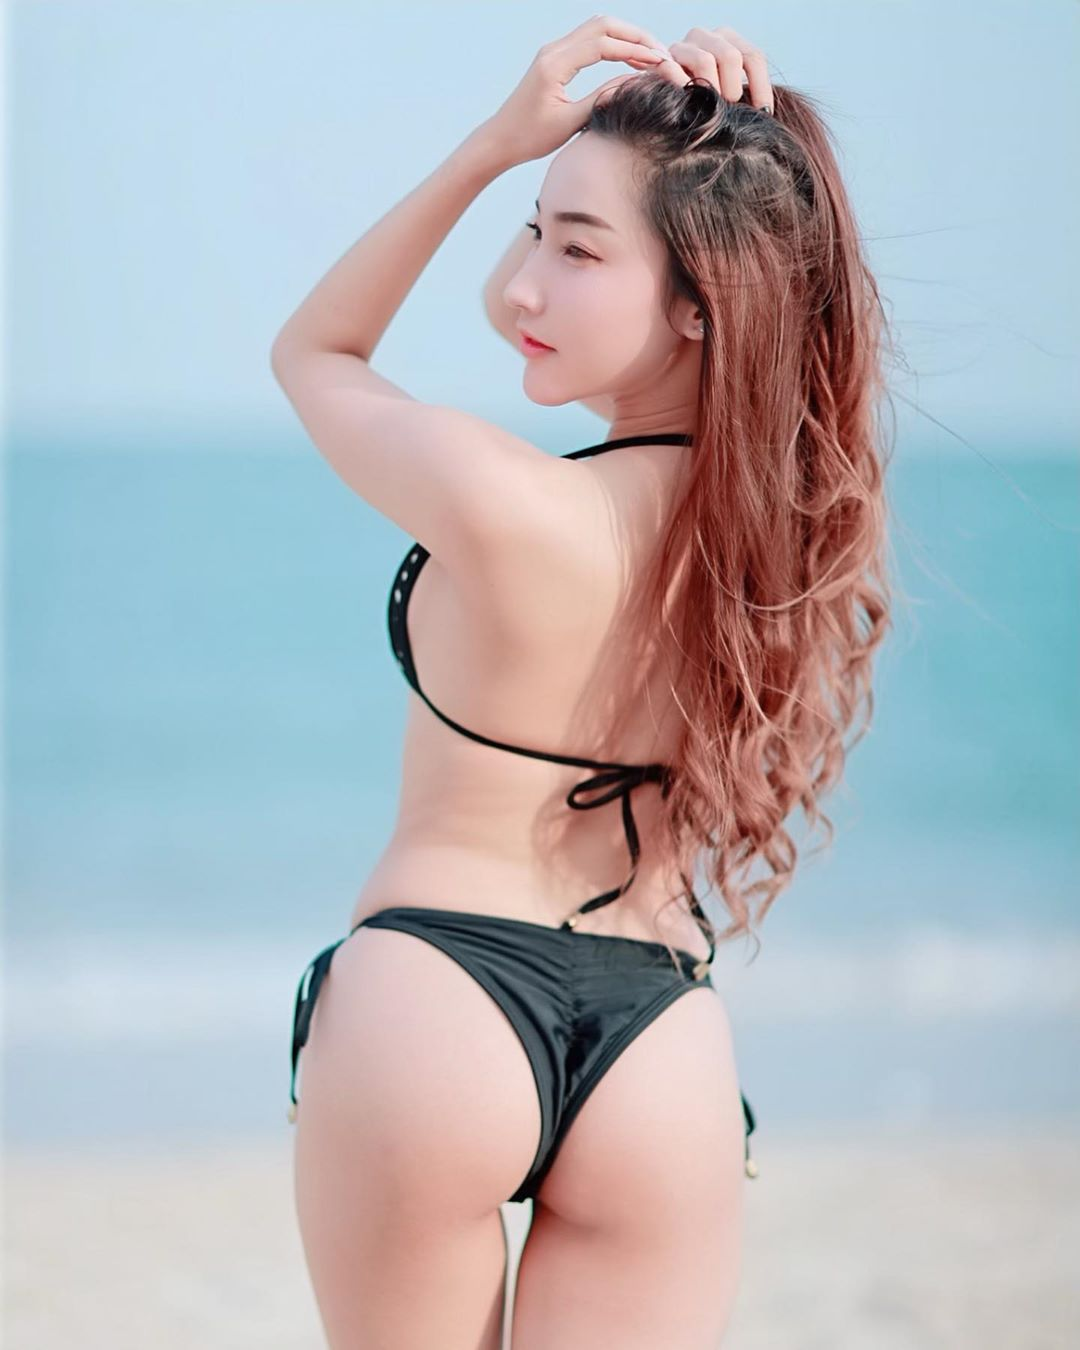 Mookki - มุกกิ Hot Cute Girl Thailand